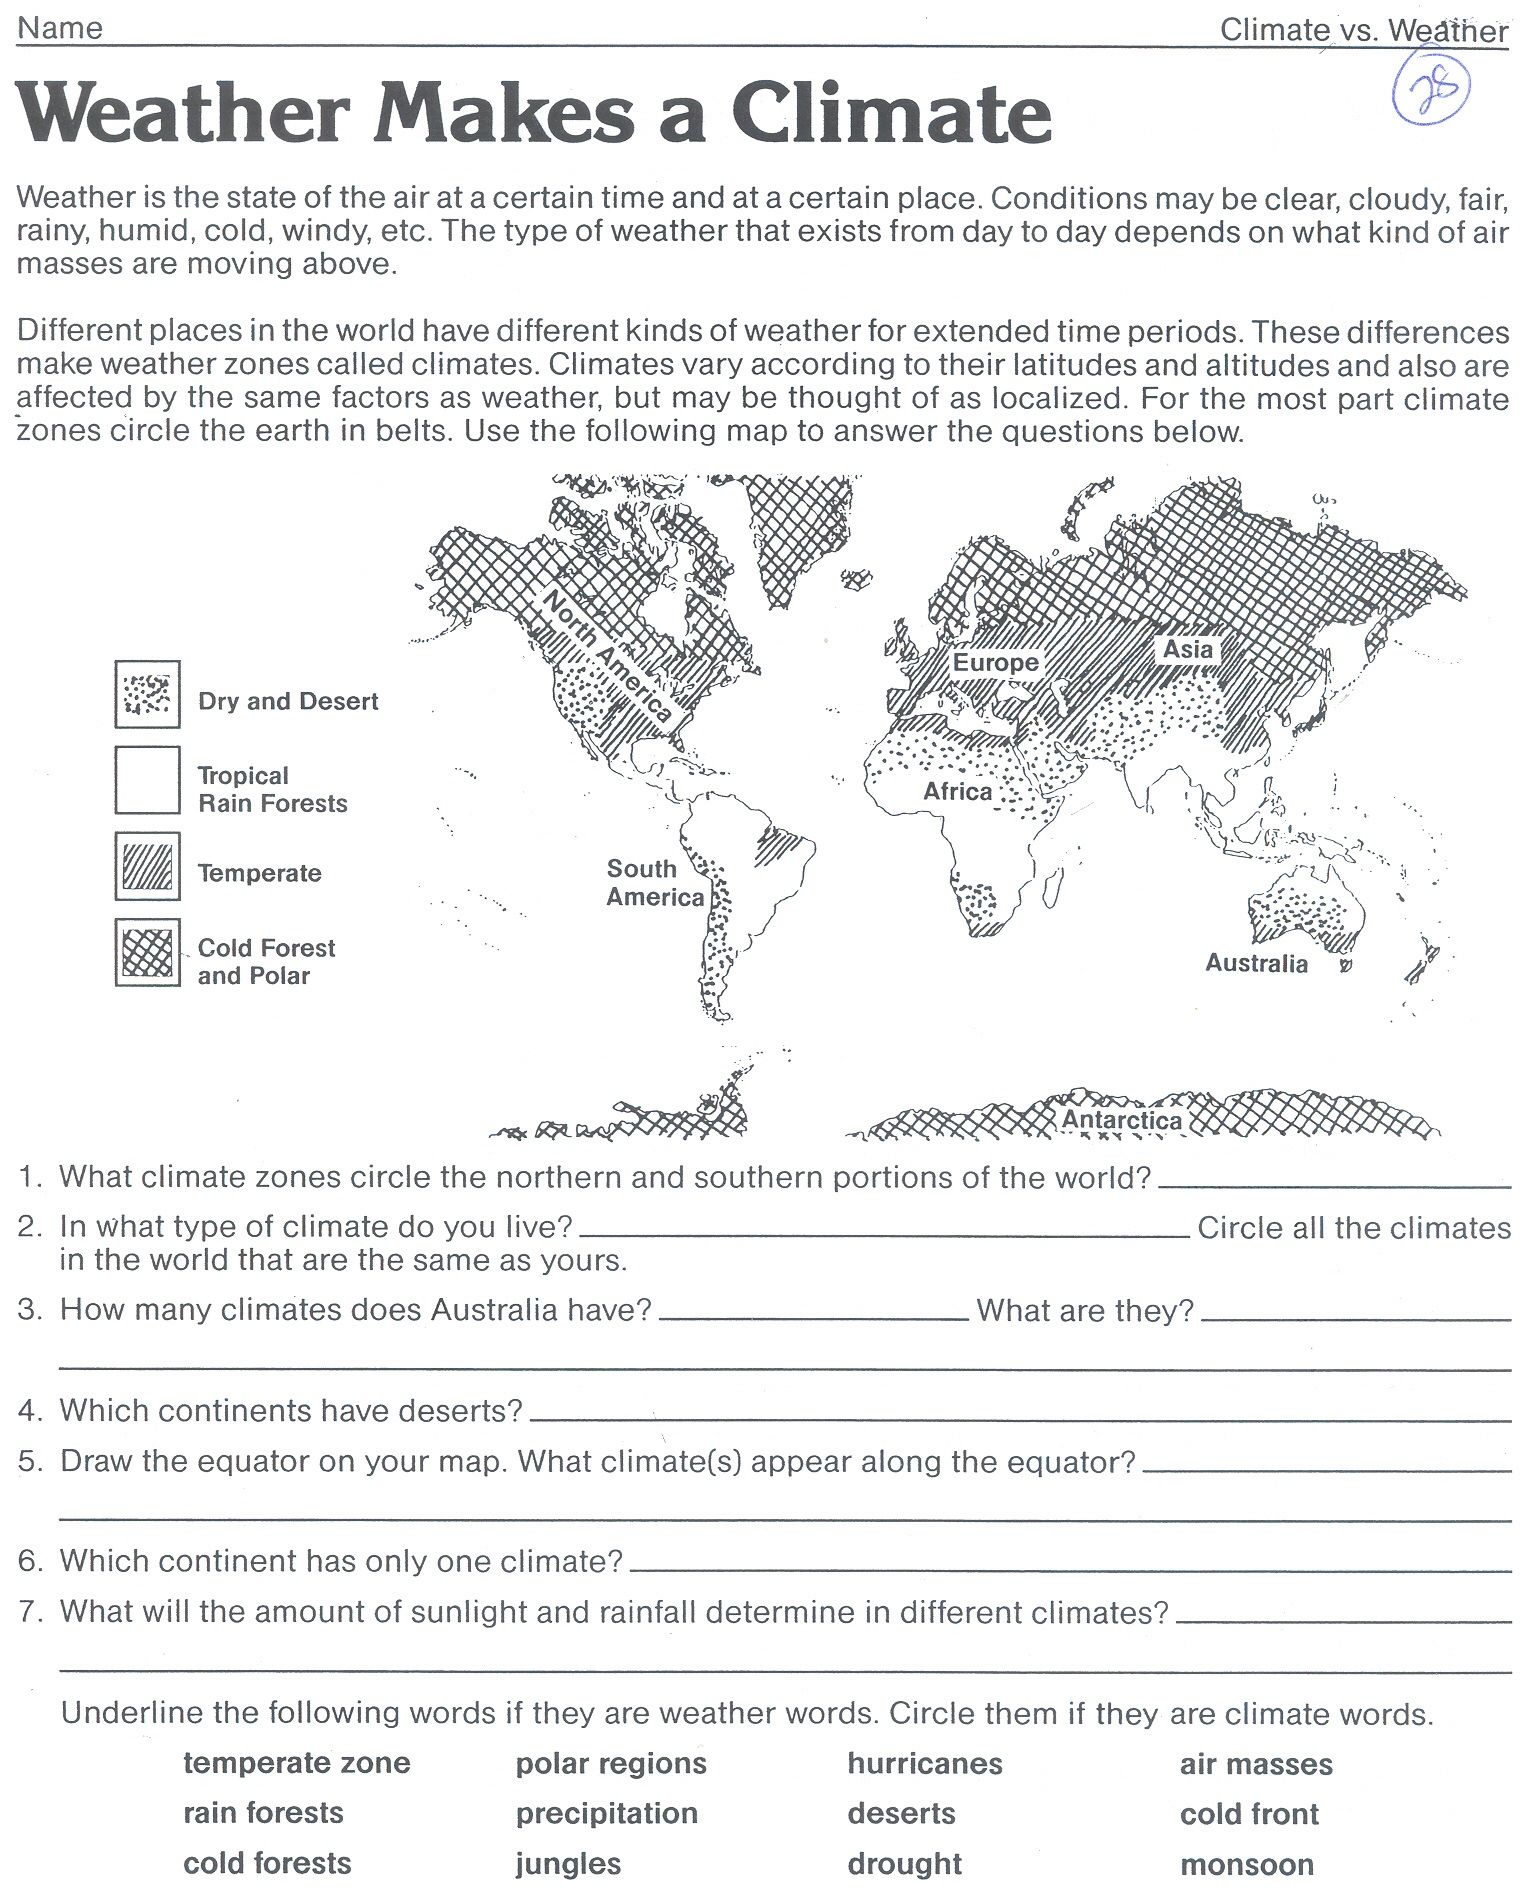 climate vs weather worksheets 6th grade science climate best free printable worksheets. Black Bedroom Furniture Sets. Home Design Ideas